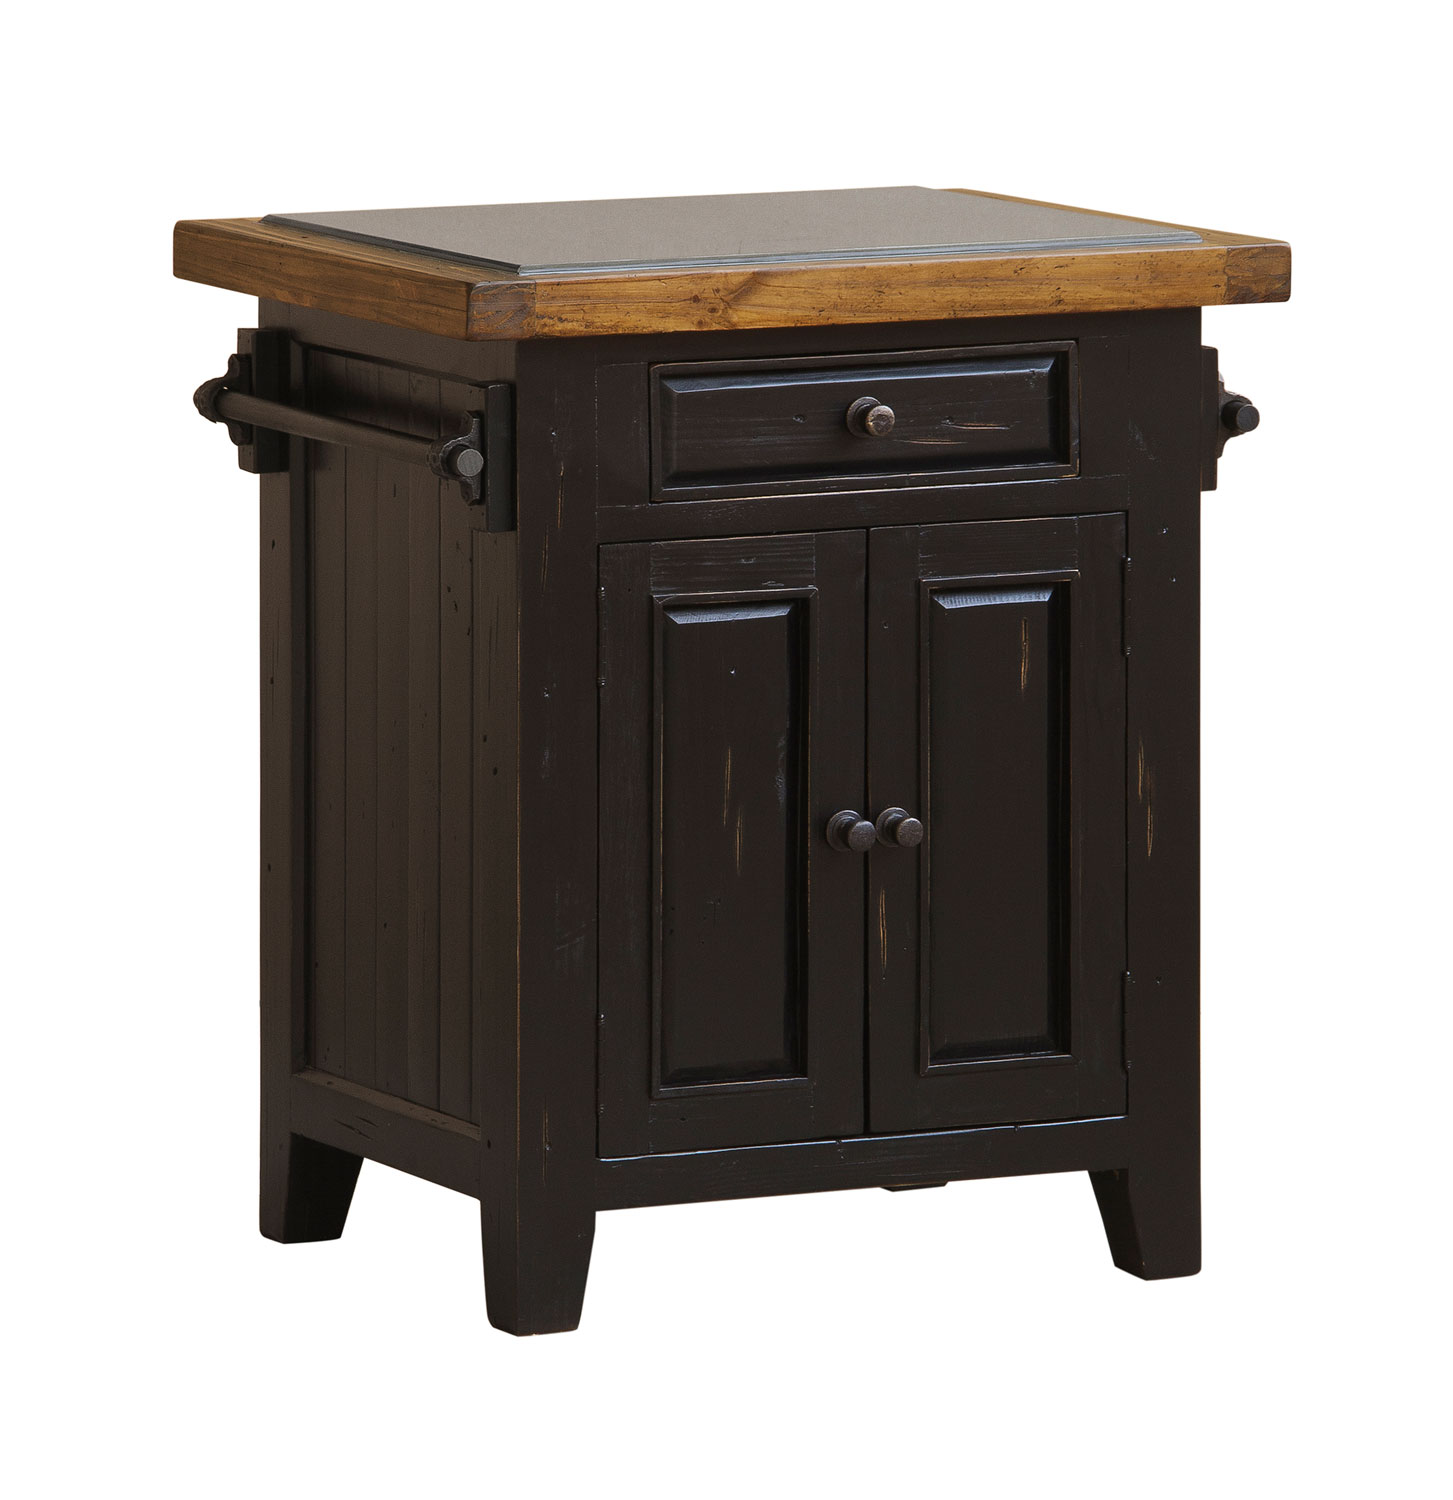 Hilale Tuscan Retreat Small Granite Top Kitchen Island Black Oxford